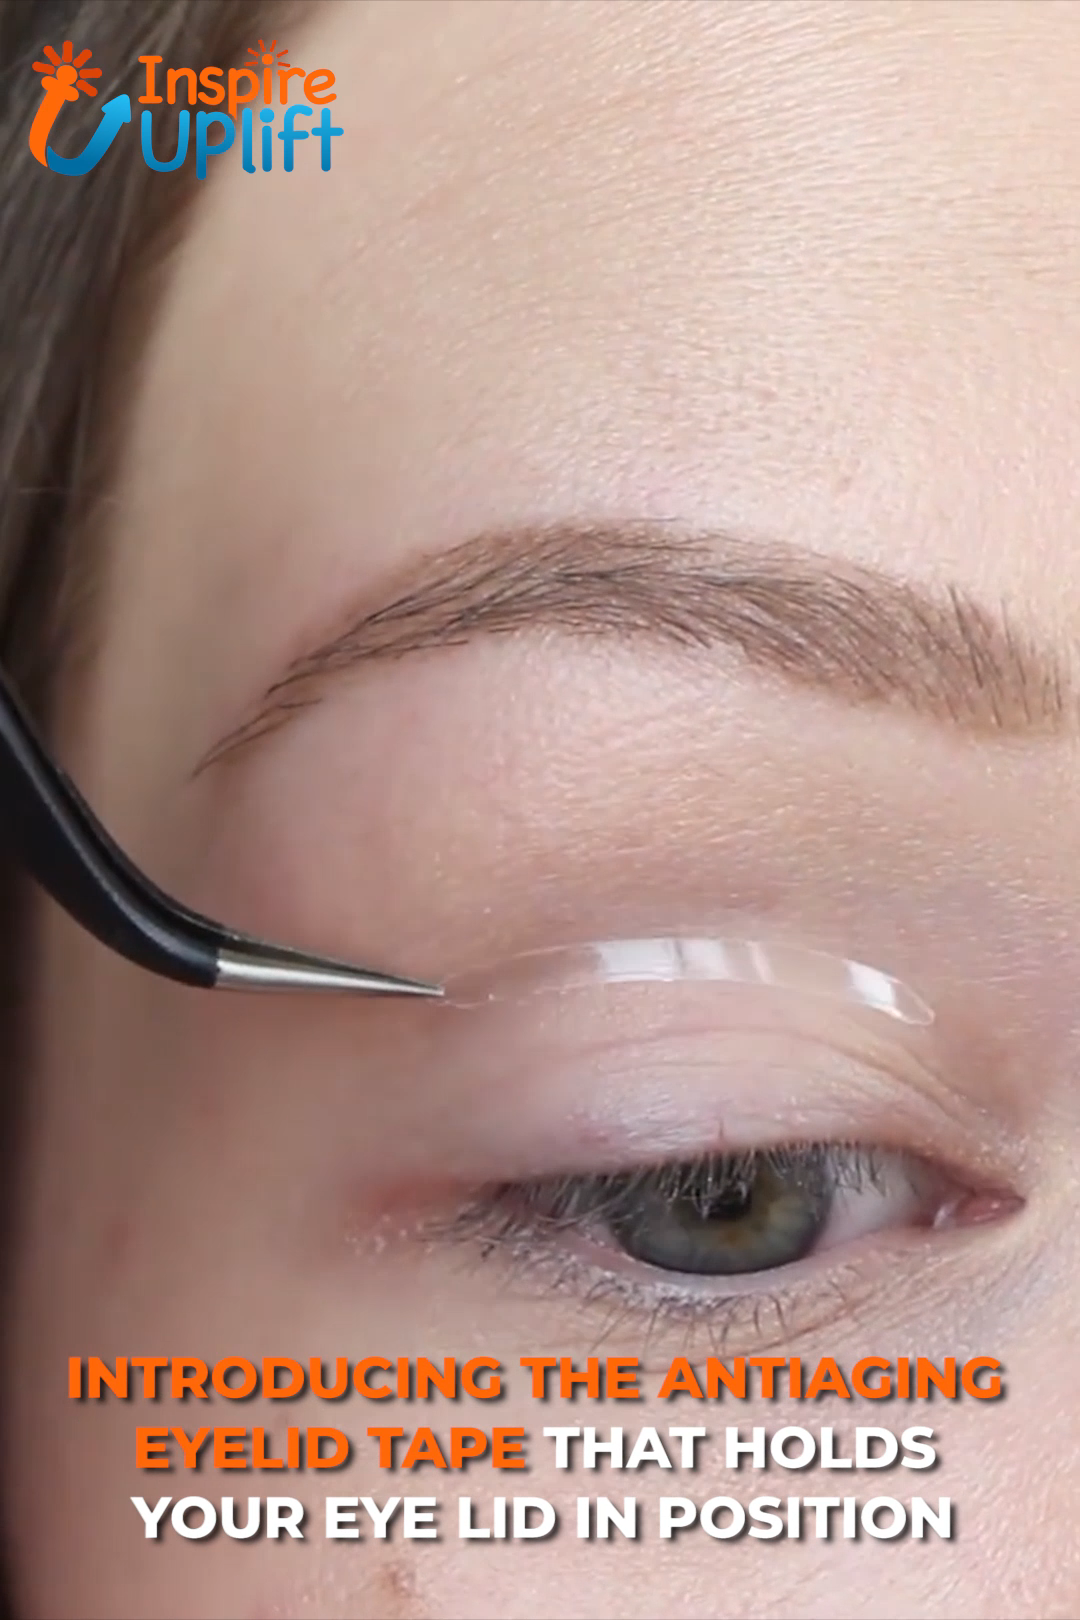 Anti-Aging Eyelid Tape (Contains 100 Strips) 😍 -   11 beauty Hacks under eye ideas